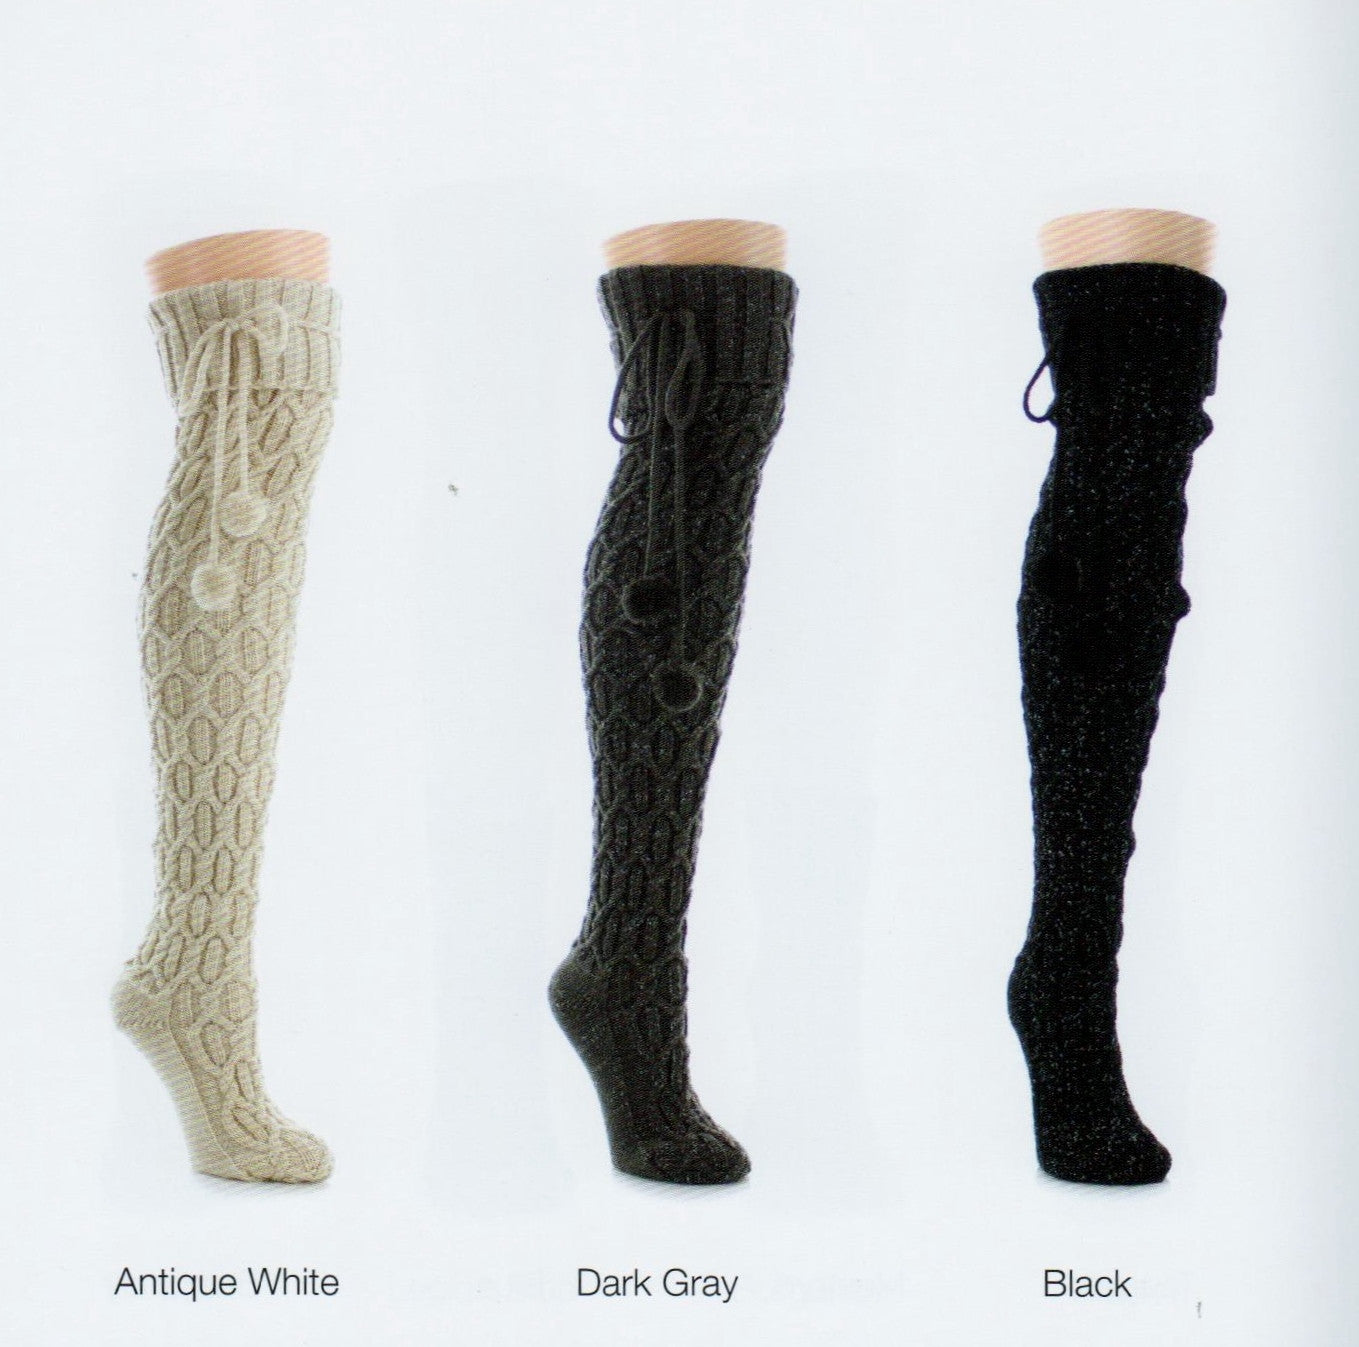 b1e805b6c Legmogue Interdiamond Chunky Knit Over The Knee Sock. Over The Knee Twisted  Cable Knit makes Diamond patterns all the way down this Soft and